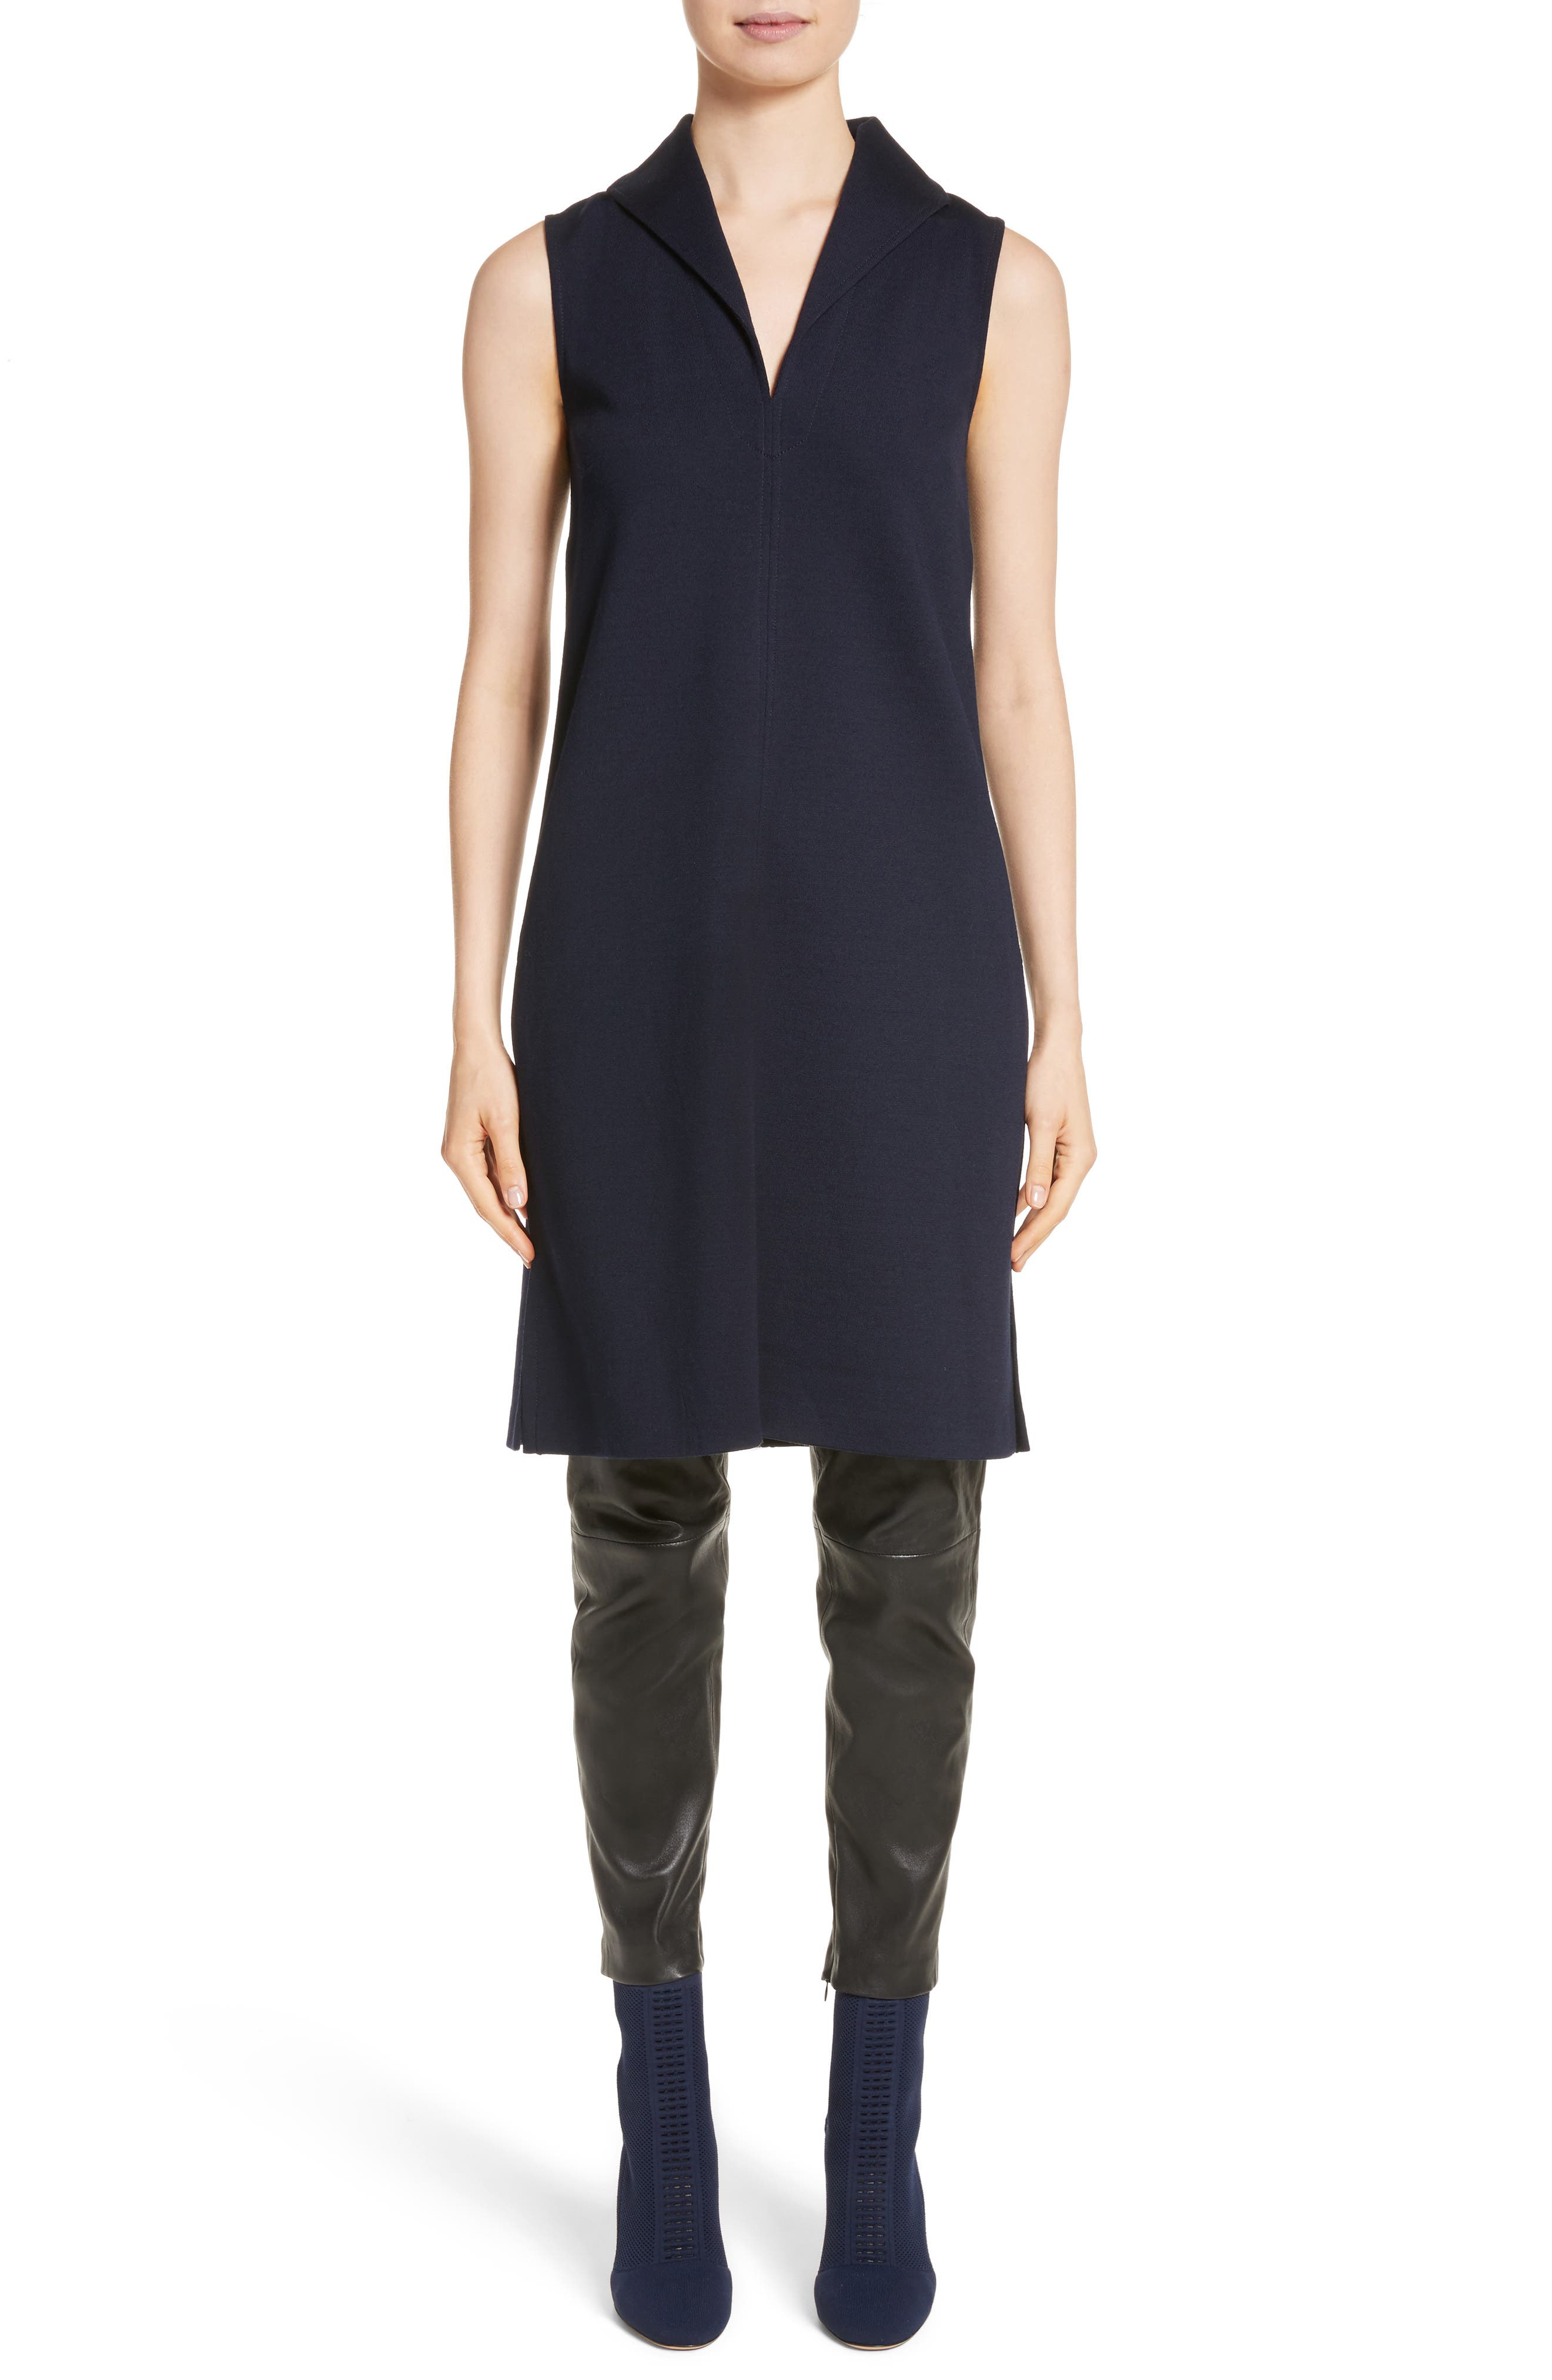 St John Collection Milano Knit Collared Tunic,                             Alternate thumbnail 7, color,                             Navy